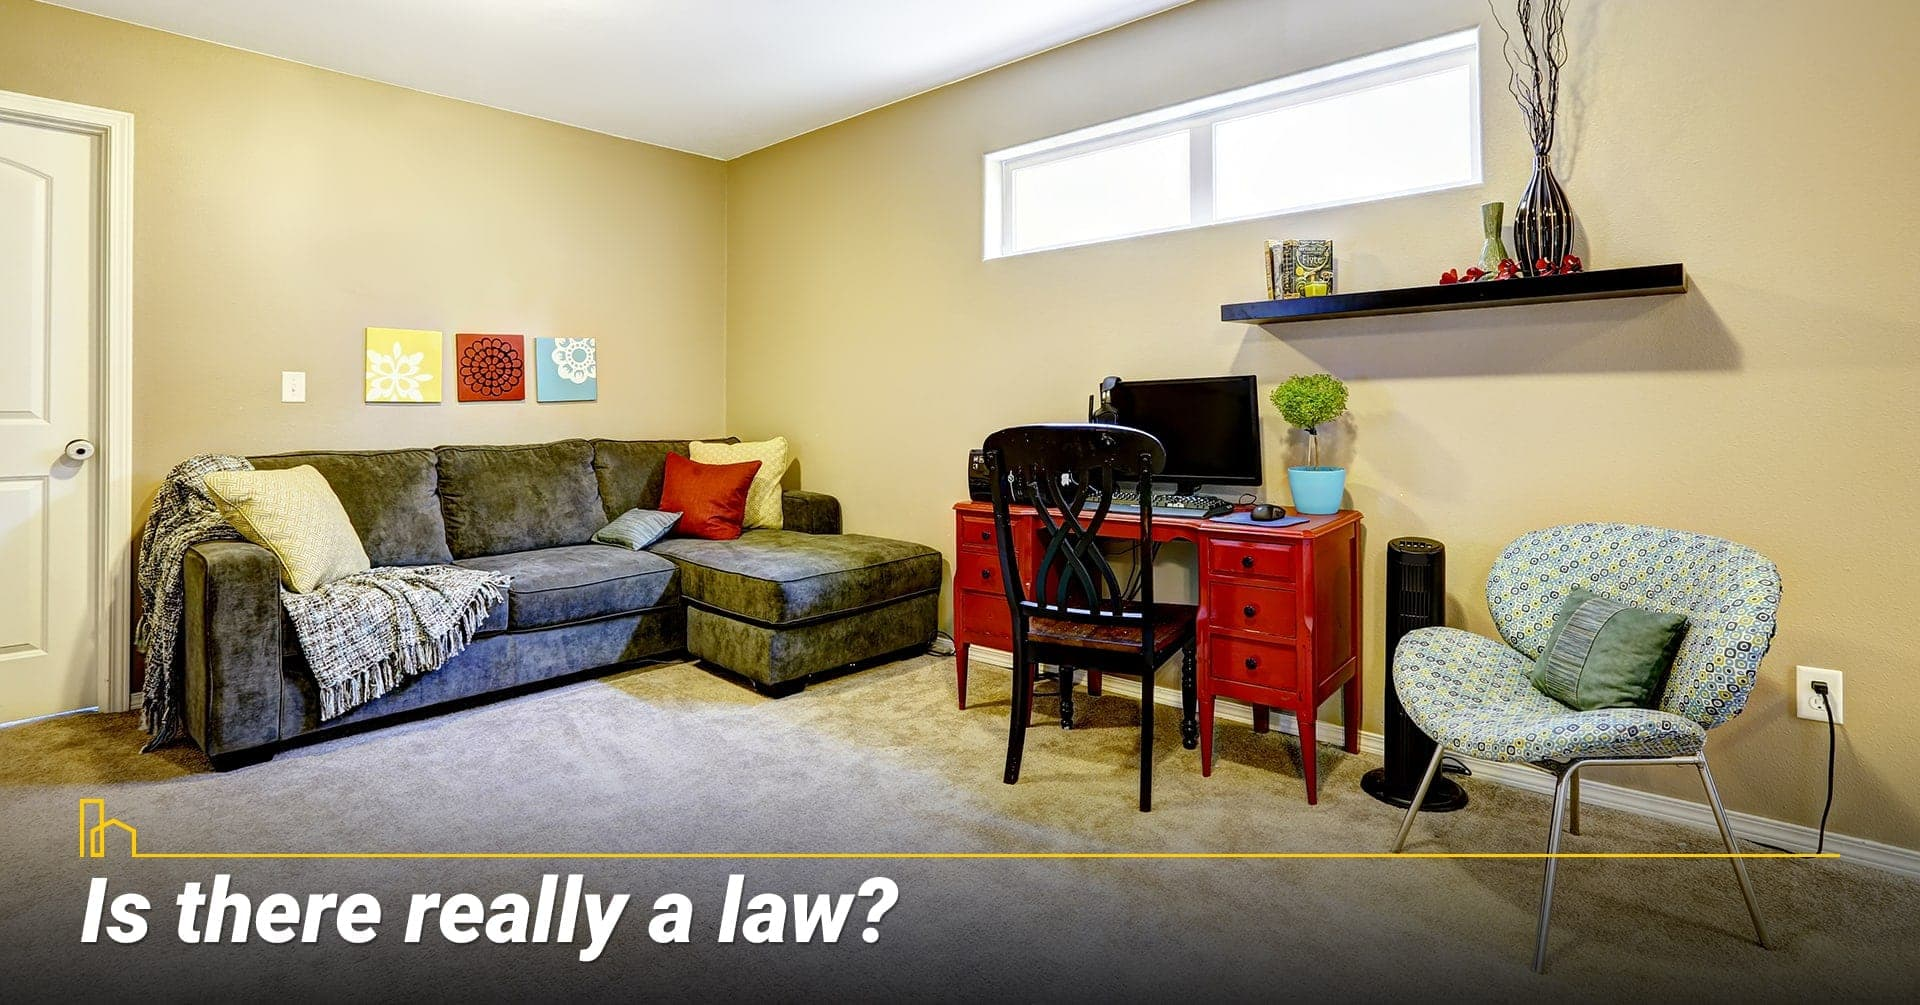 Is there really a law? having a bedroom in the basement